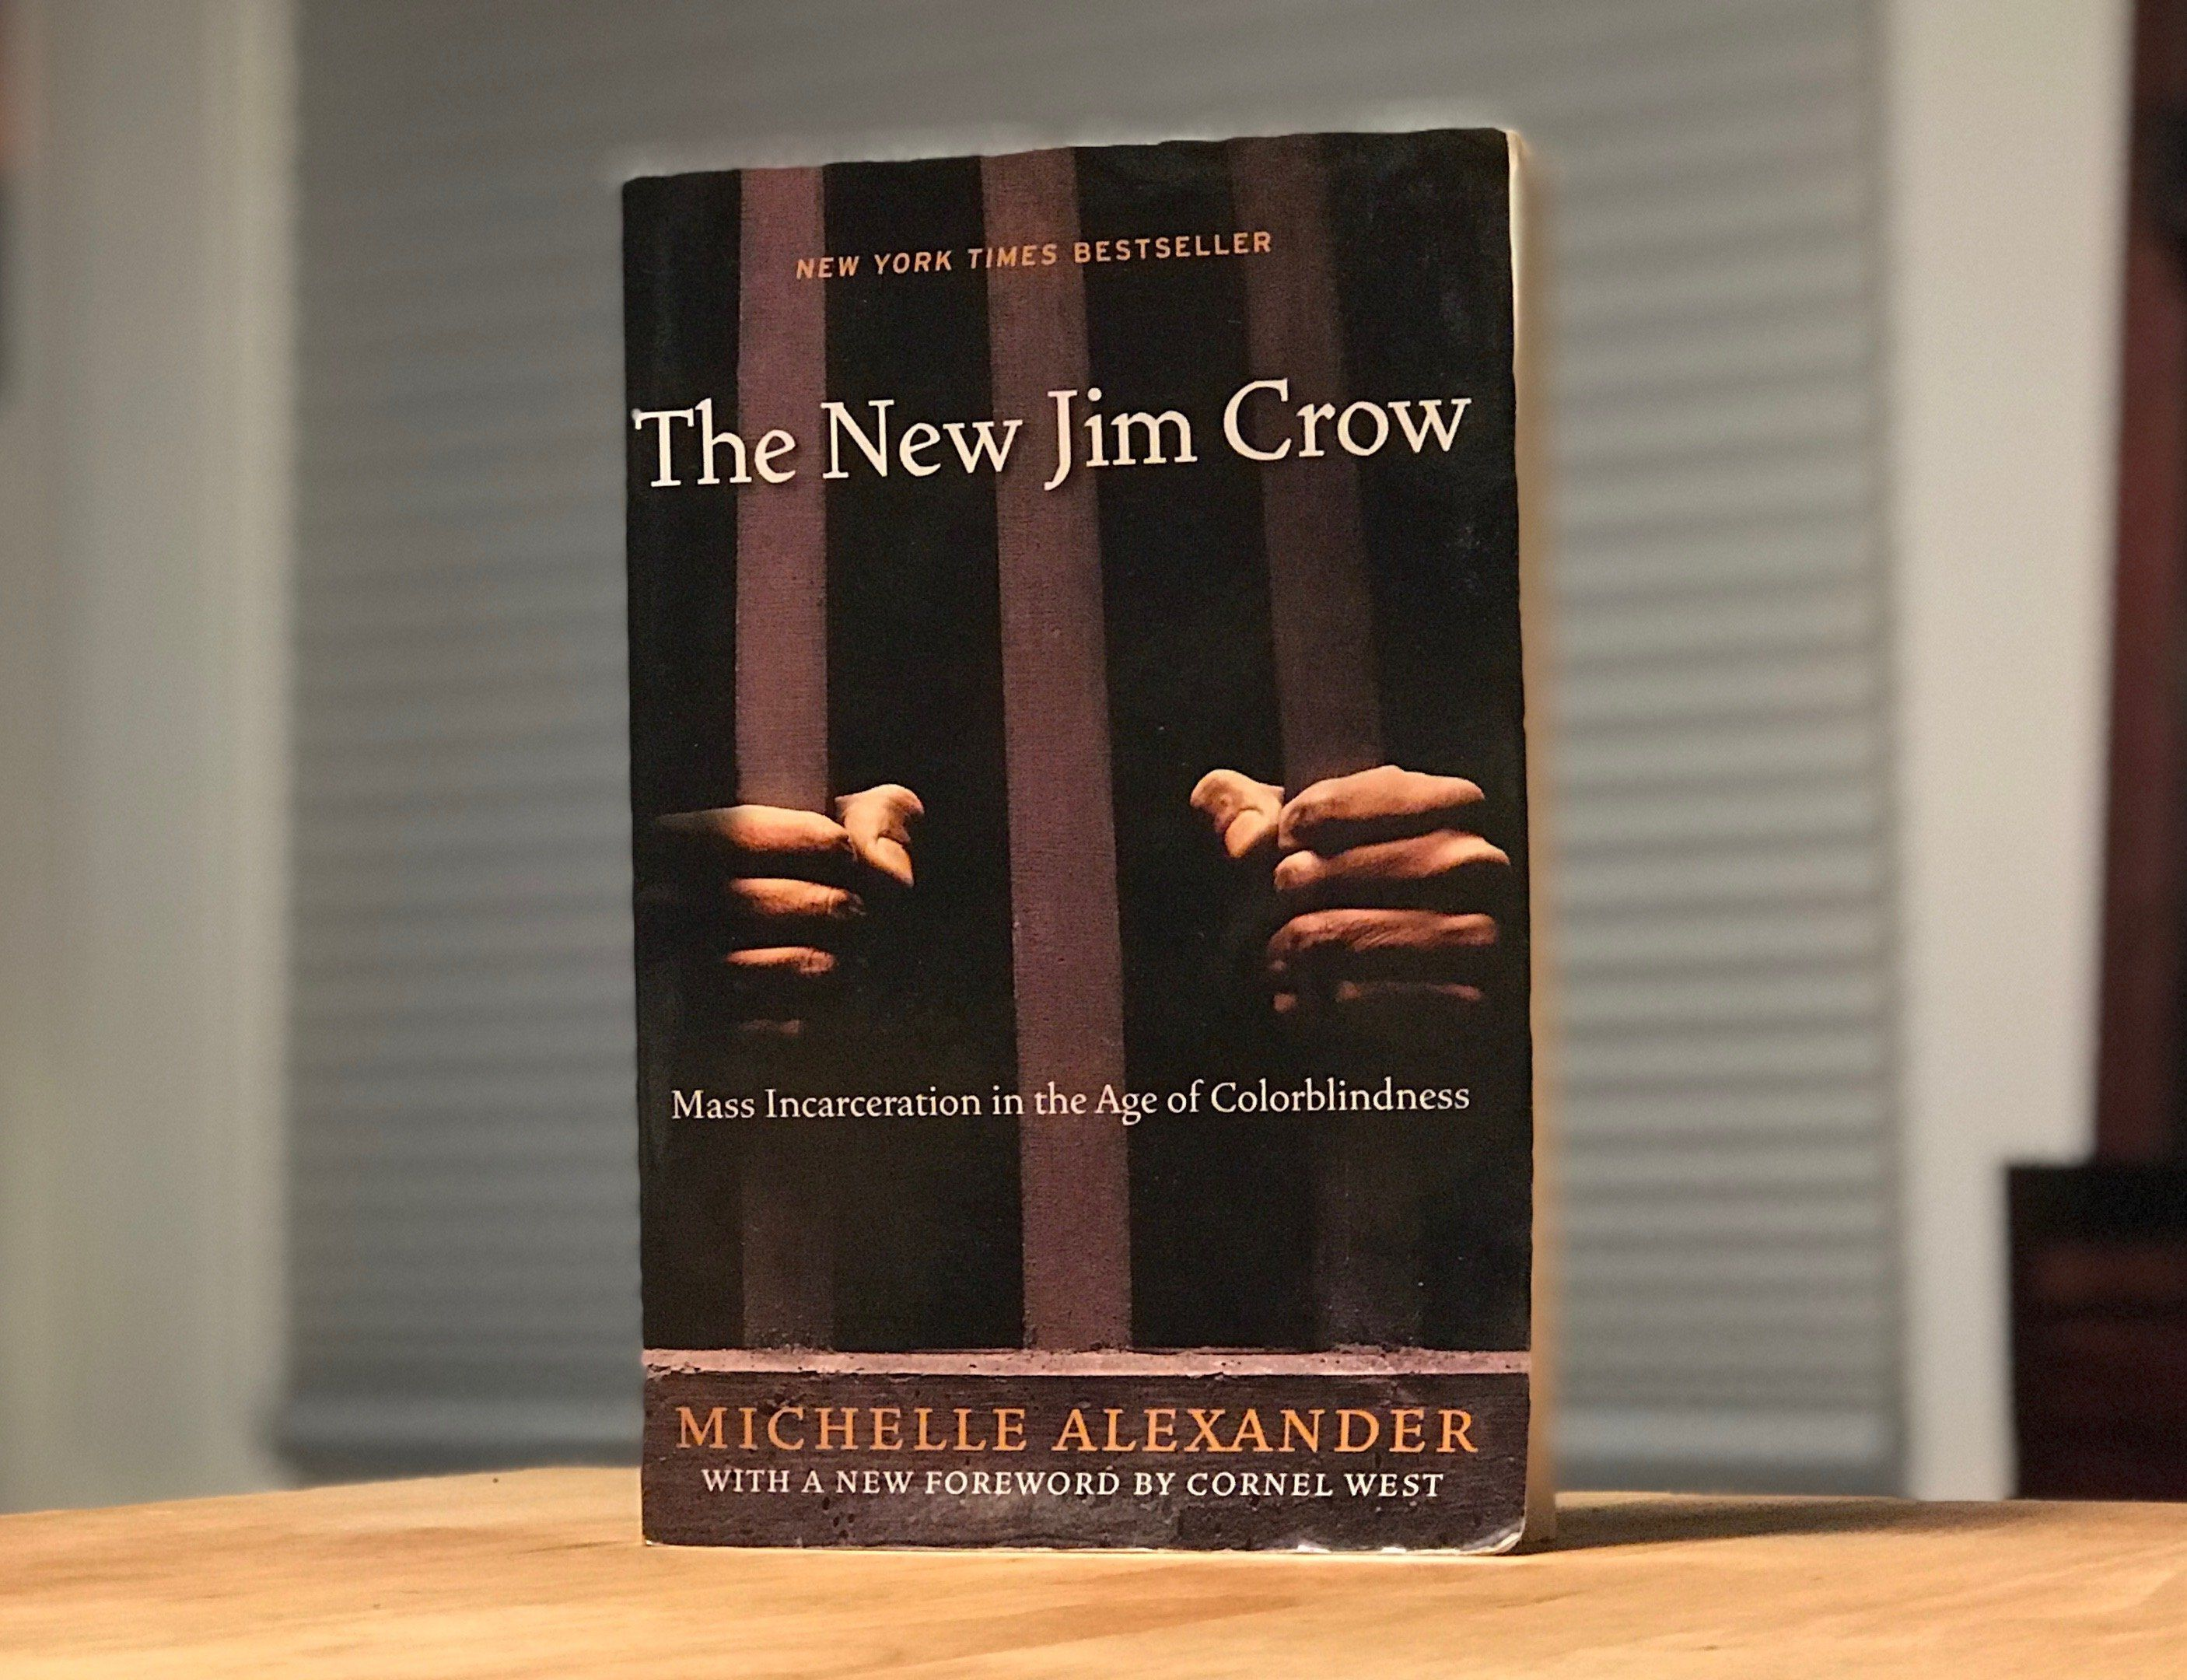 The New Jim Crow has been banned from some New Jersey prisons